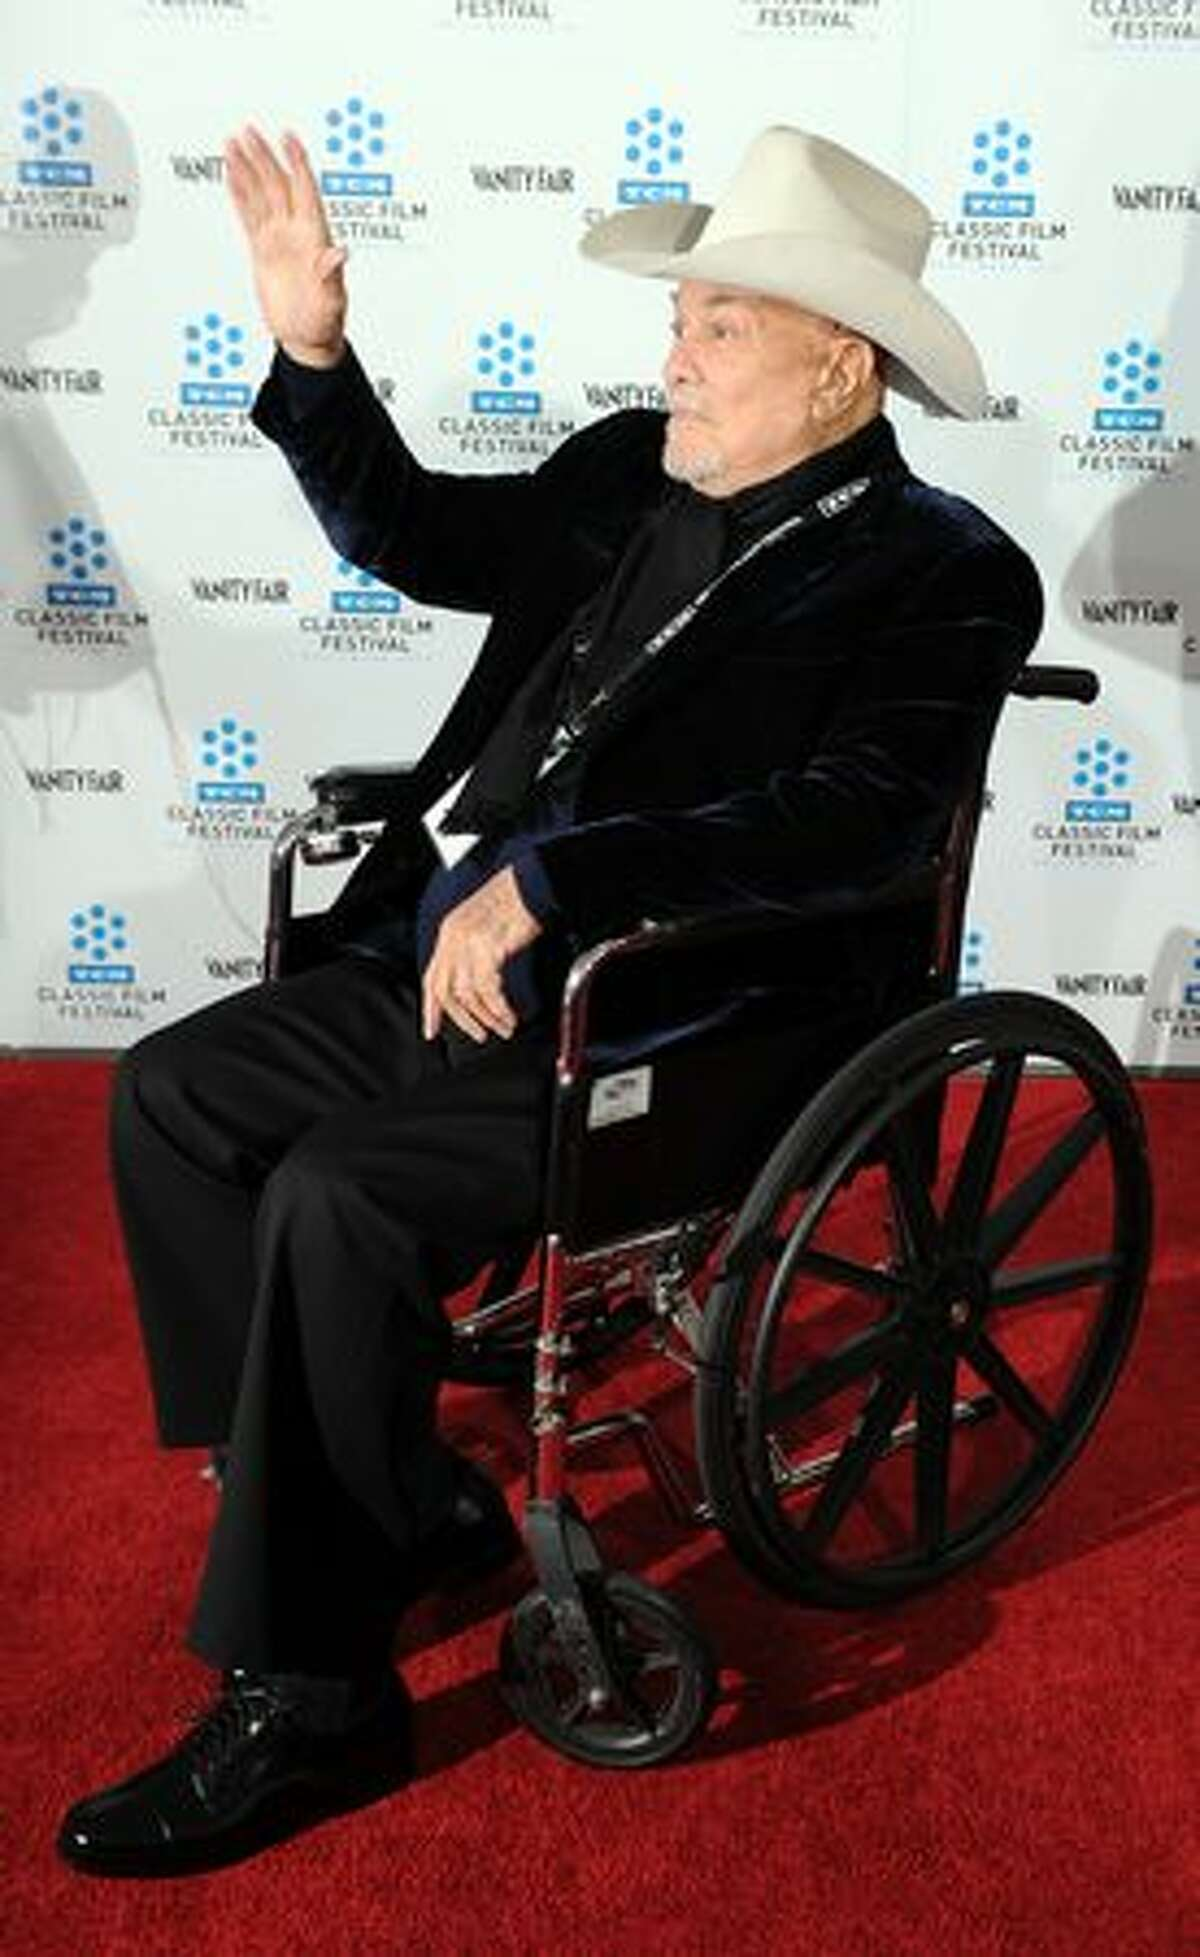 """Actor Tony Curtis arrives at the world premiere of the restored """"A Star is Born"""" during the opening Night Gala of the 2010 TCM Classic Film Festival in Hollywood, California, on April 22, 2010."""